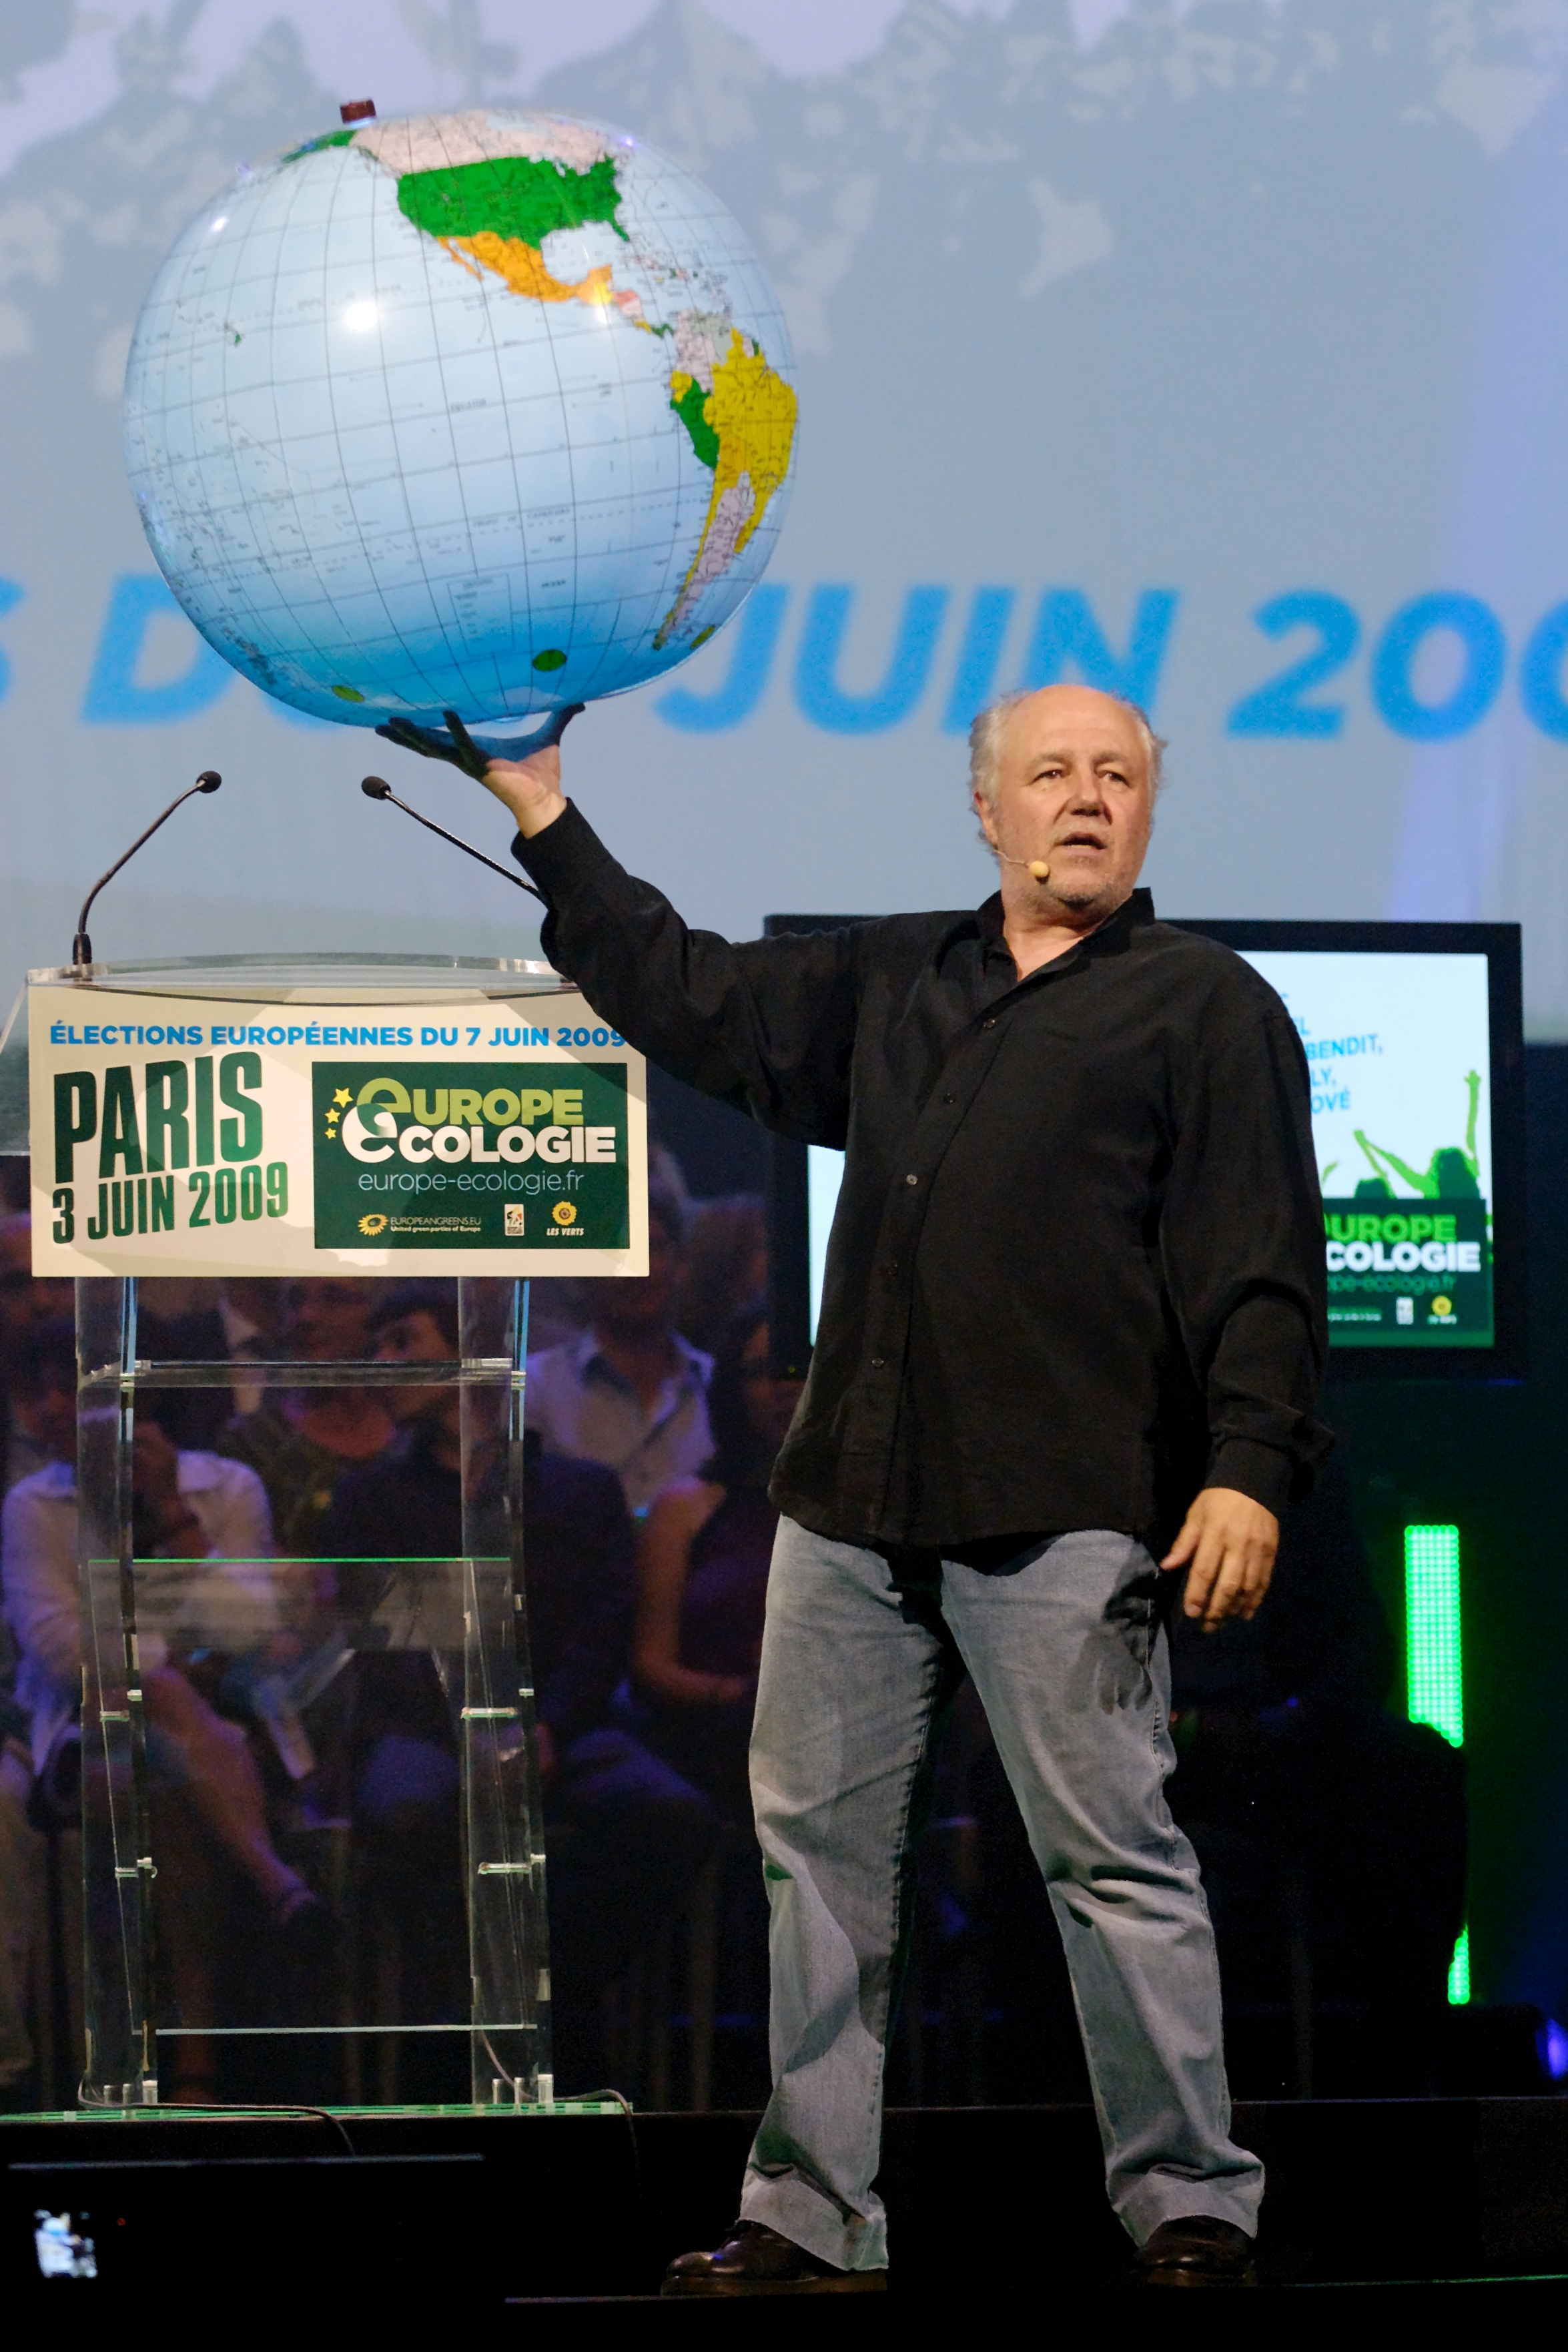 File:Marc Jolivet Europe Ecologie 2009-06-03.jpg - Wikimedia Commons